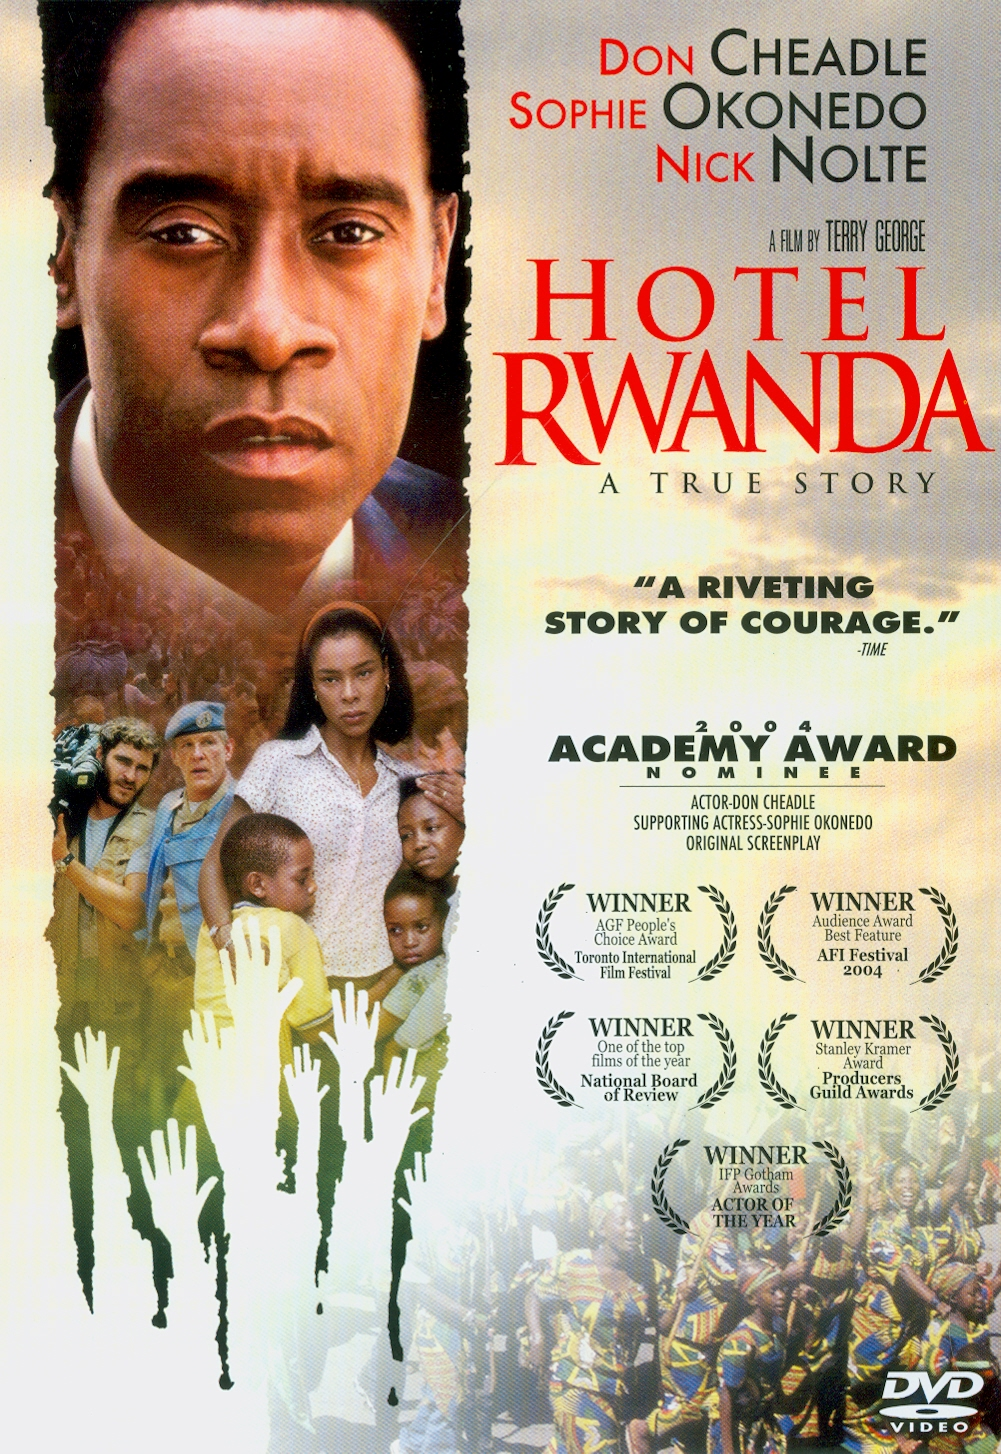 Hotel Rwanda[videorecording] /United Artists presents, in association with Lions Gate Entertainment a South Africa/United Kingdom/Italy co-production||รวันดา ความหวังไม่สูญสิ้น